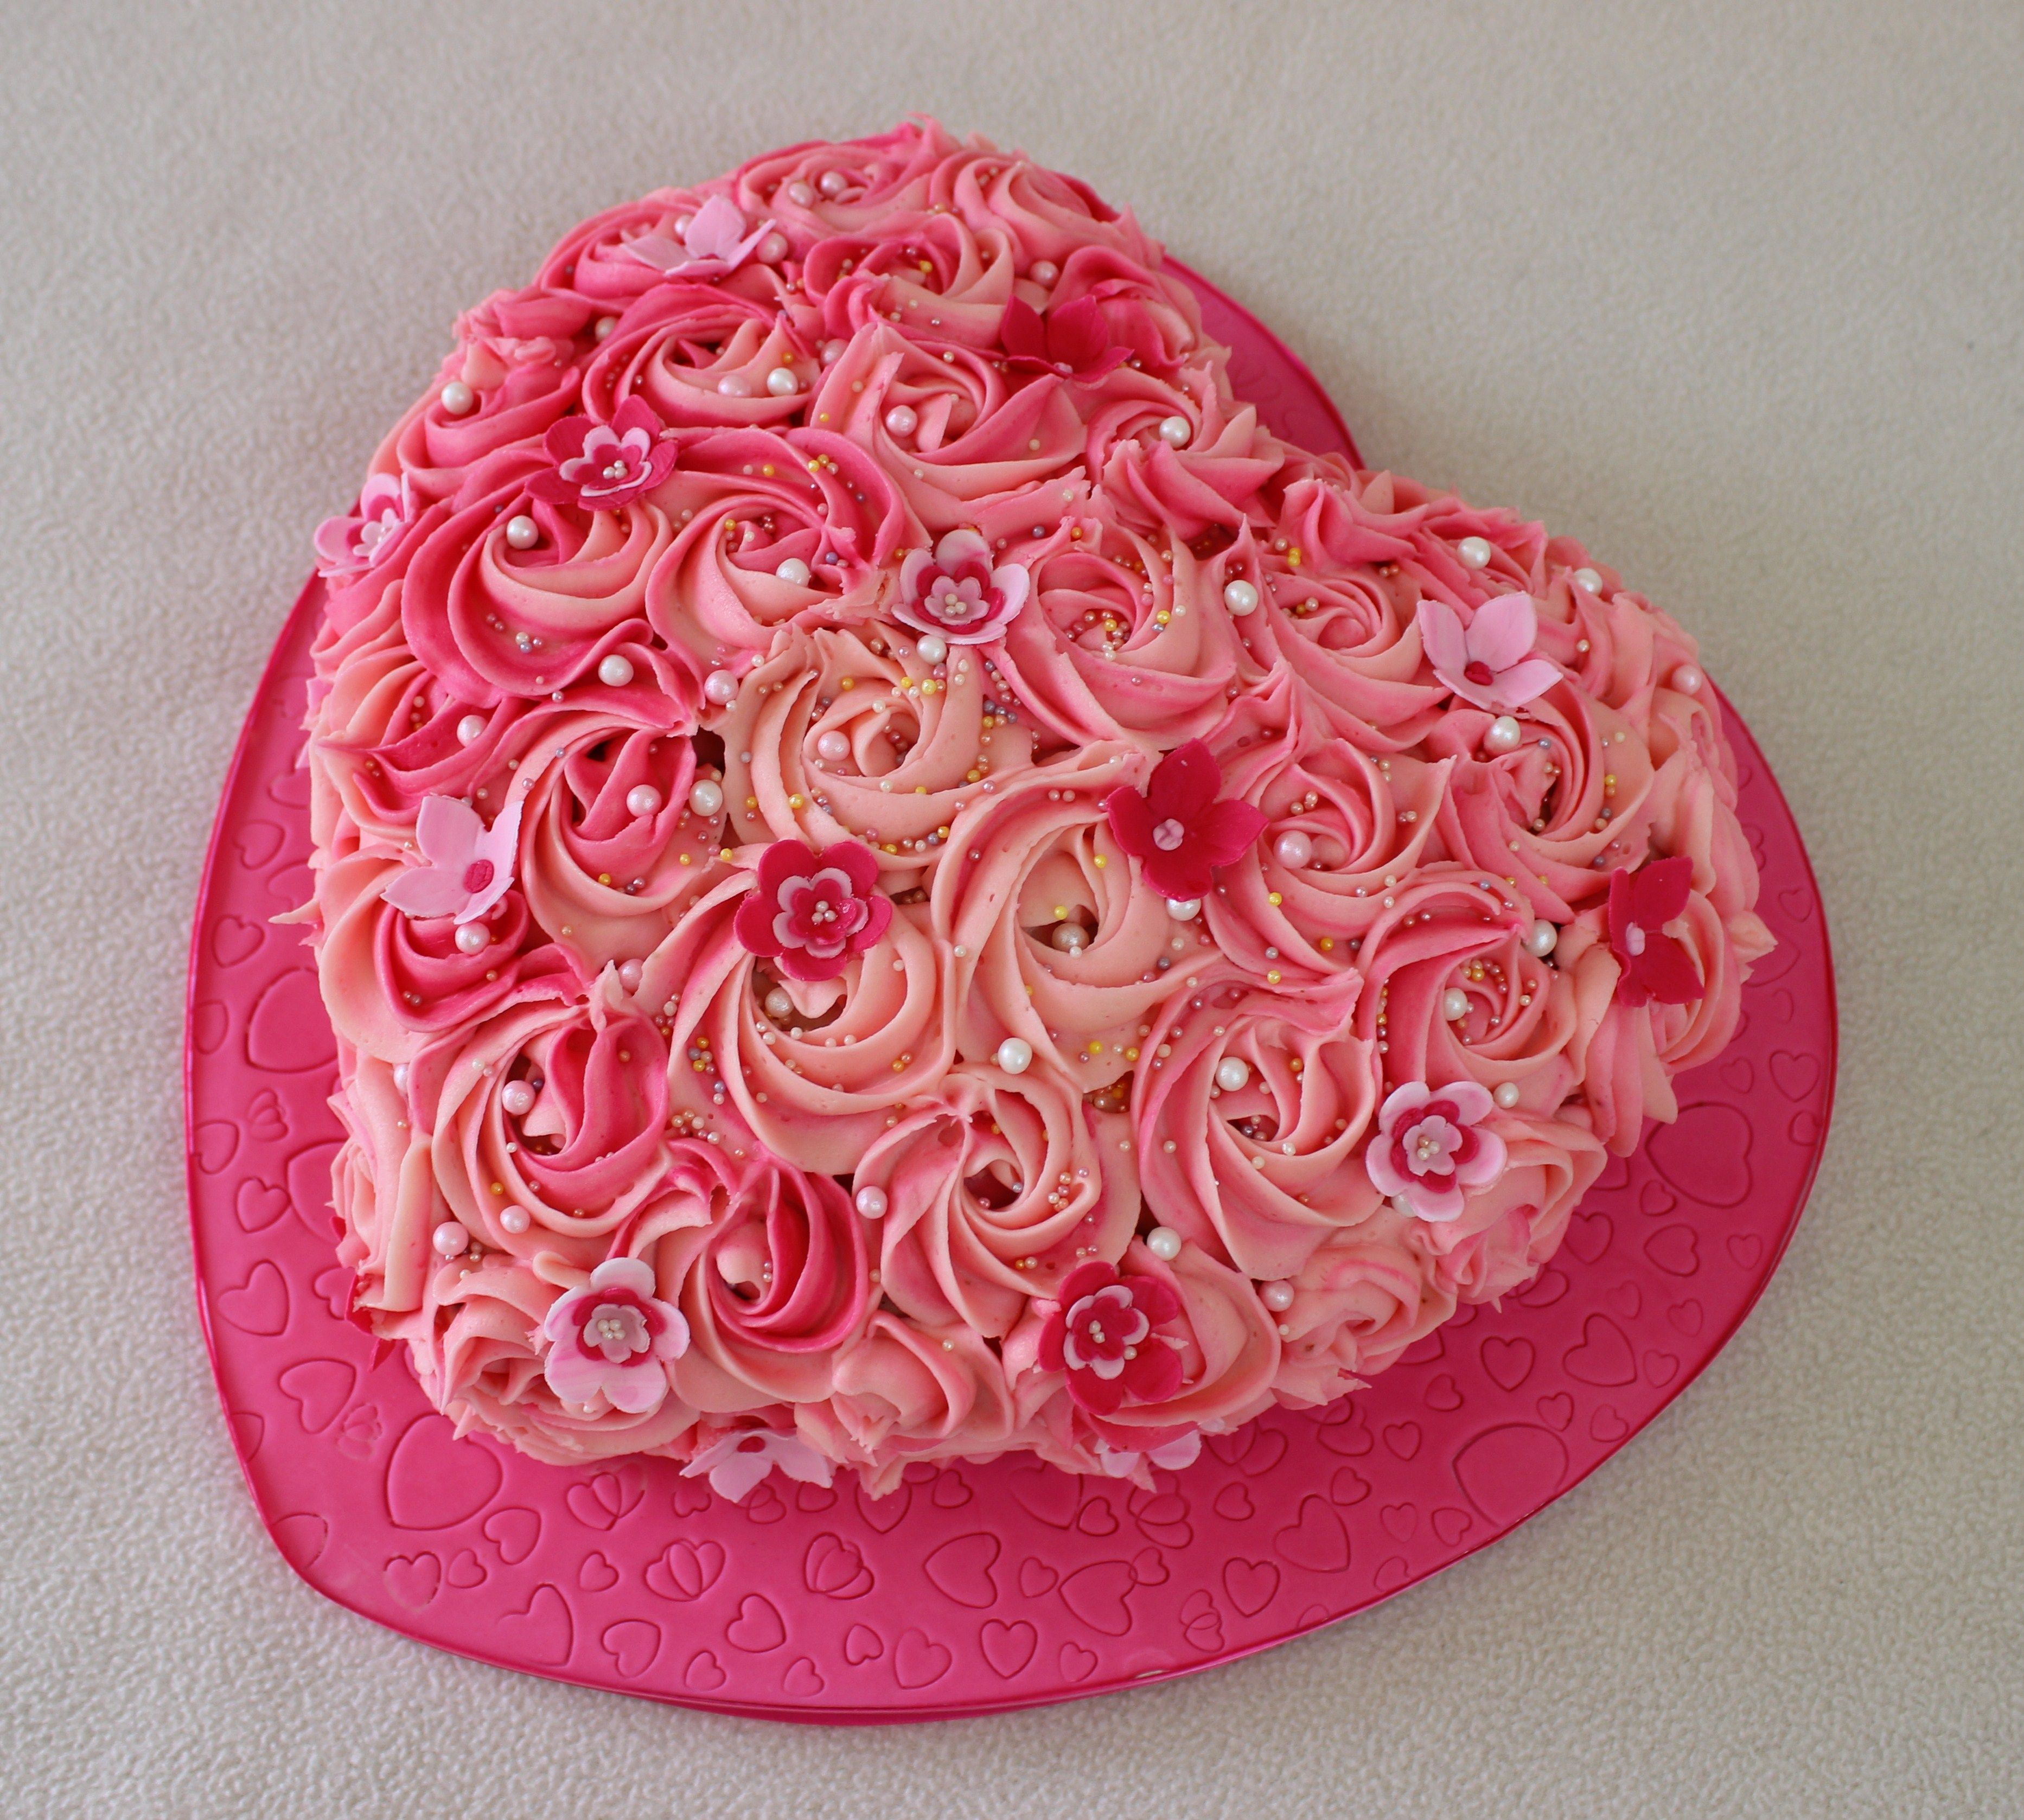 Pink Heart Shape Cake With Buttercream Rose Swirls Cake Heart Shaped Cakes Cake Designs Birthday